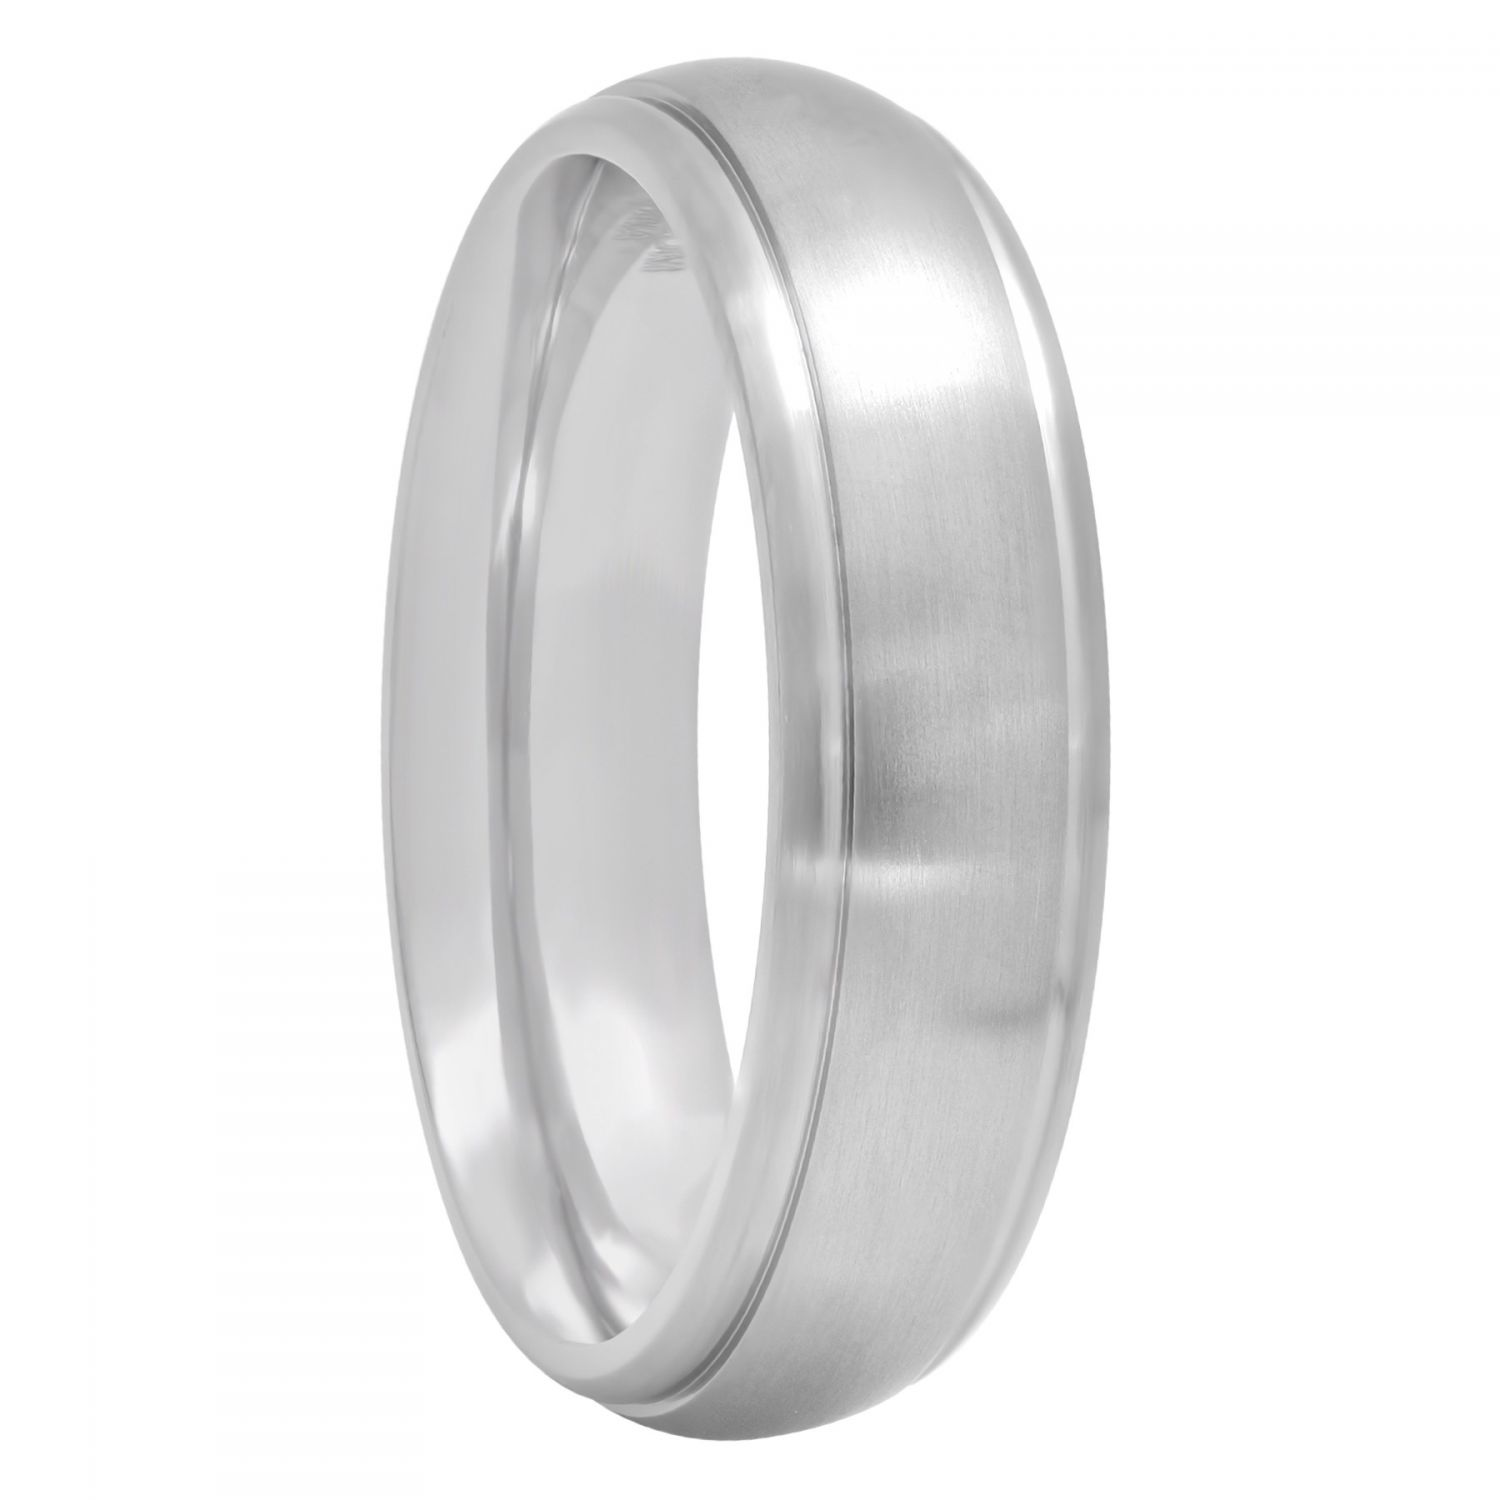 Titanium Polished Satin Band, 6mm